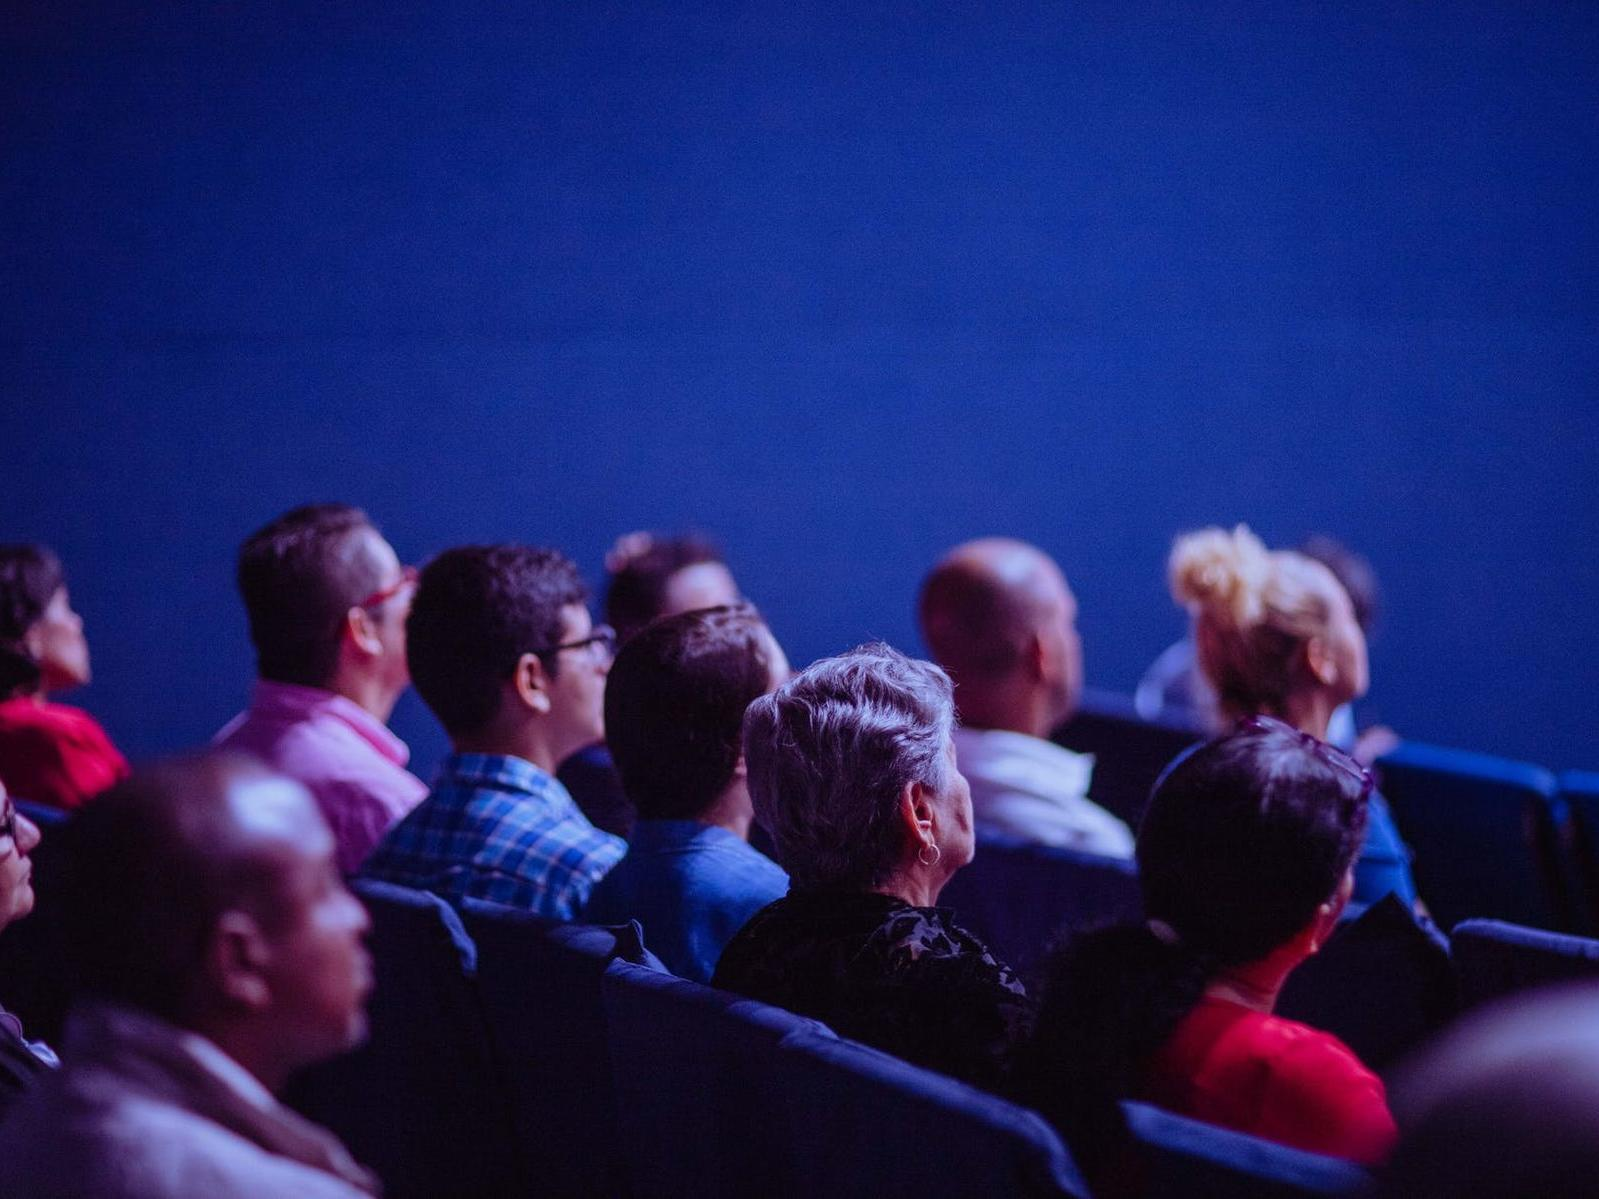 people in a theater